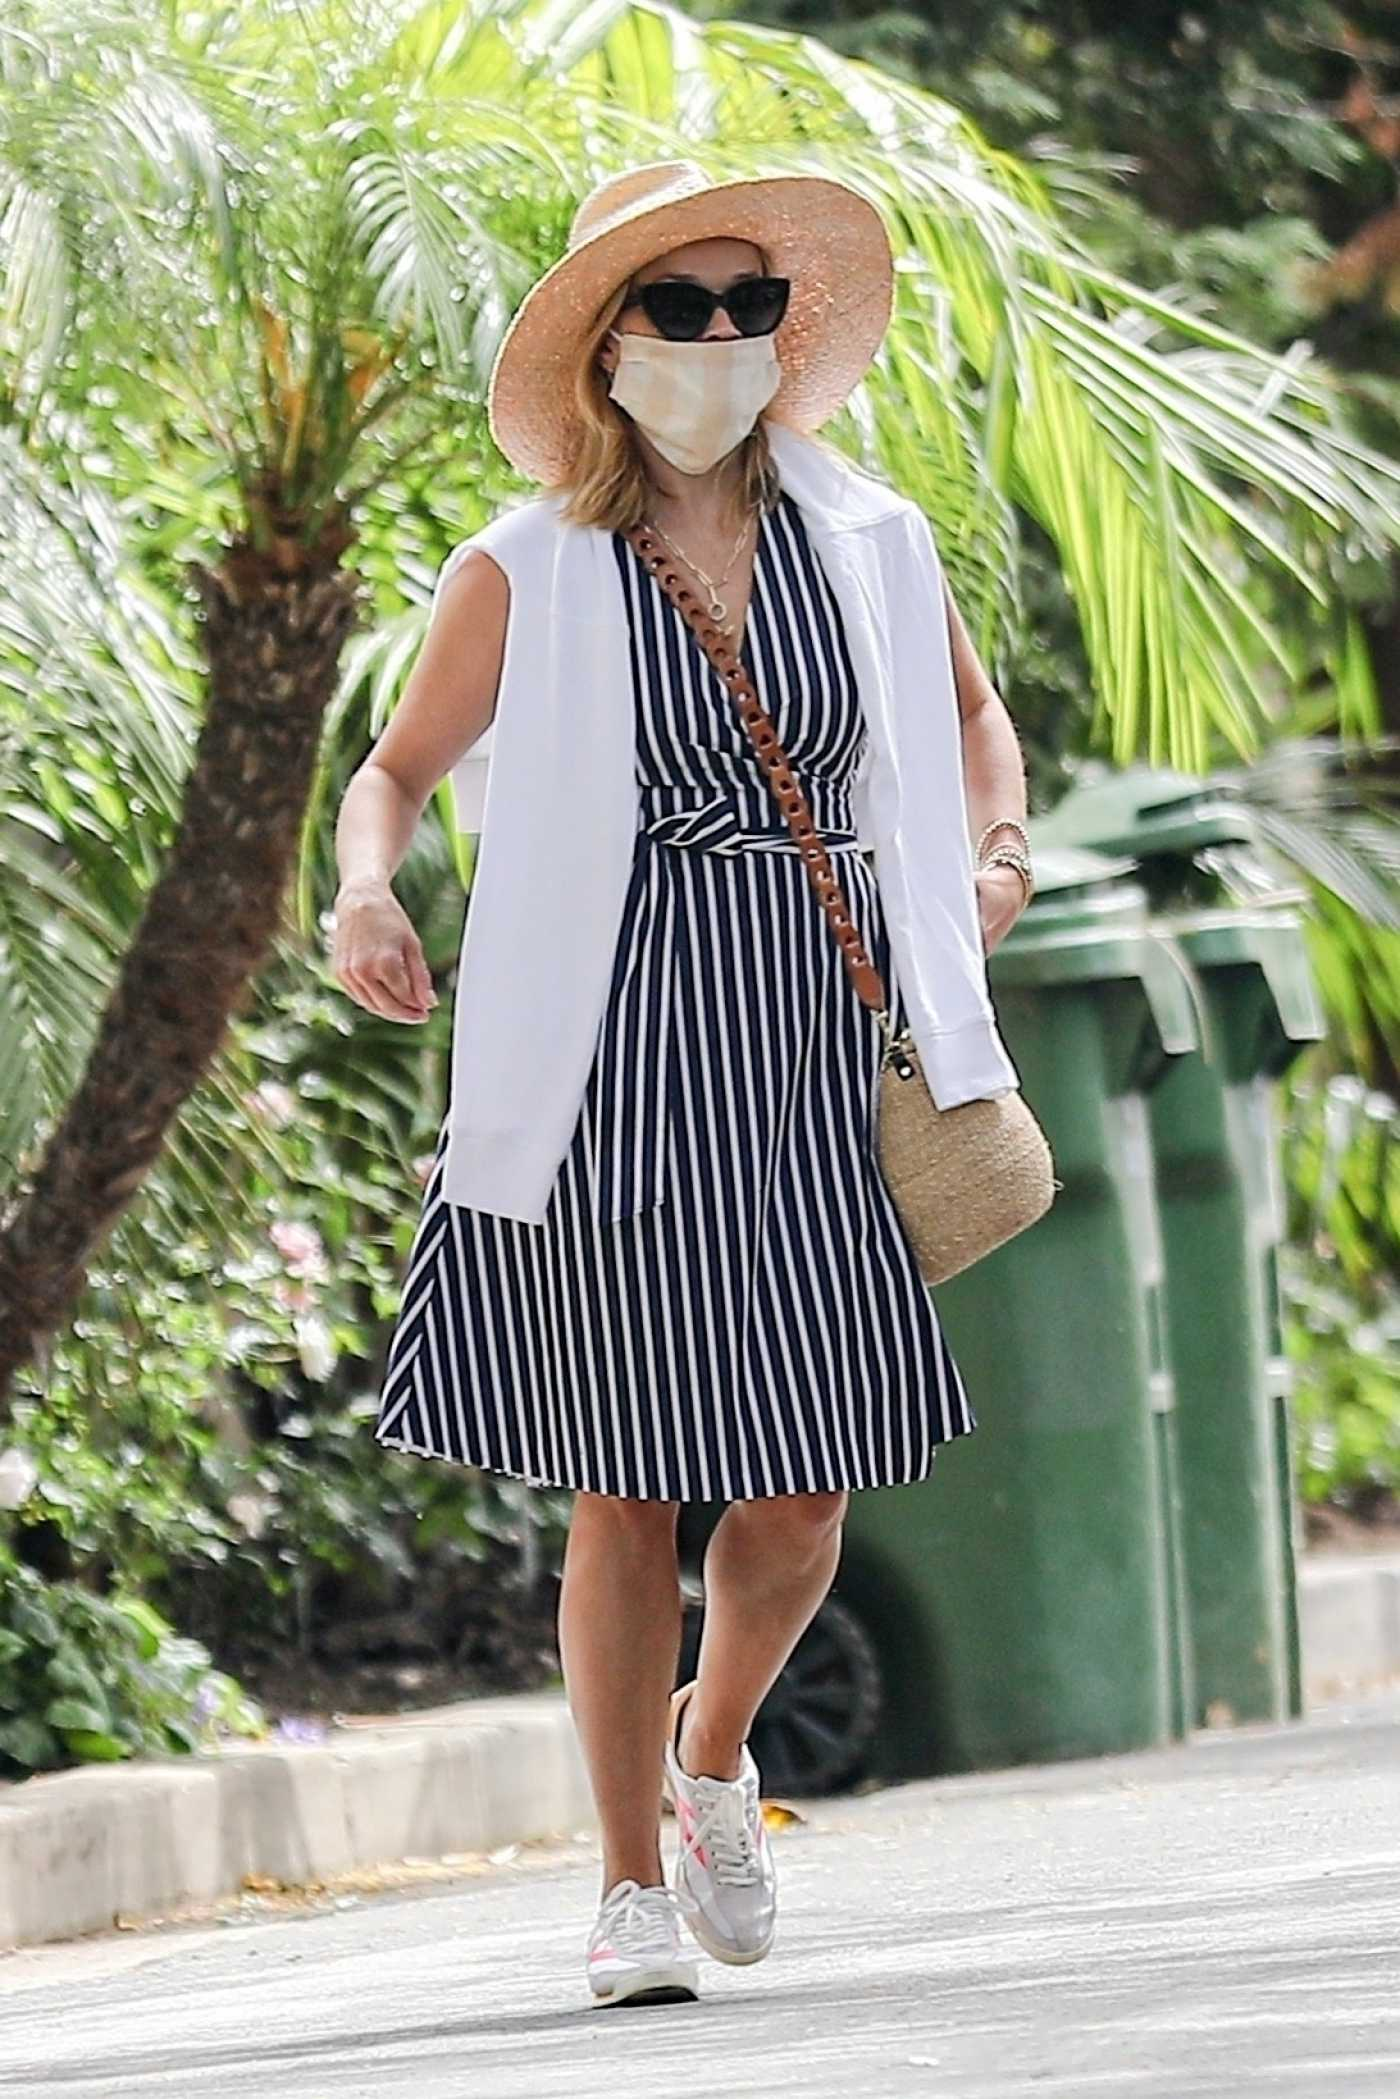 Reese Witherspoon in a Striped Dress Was Seen Out with Jim Toth in Brentwood 06/23/2020